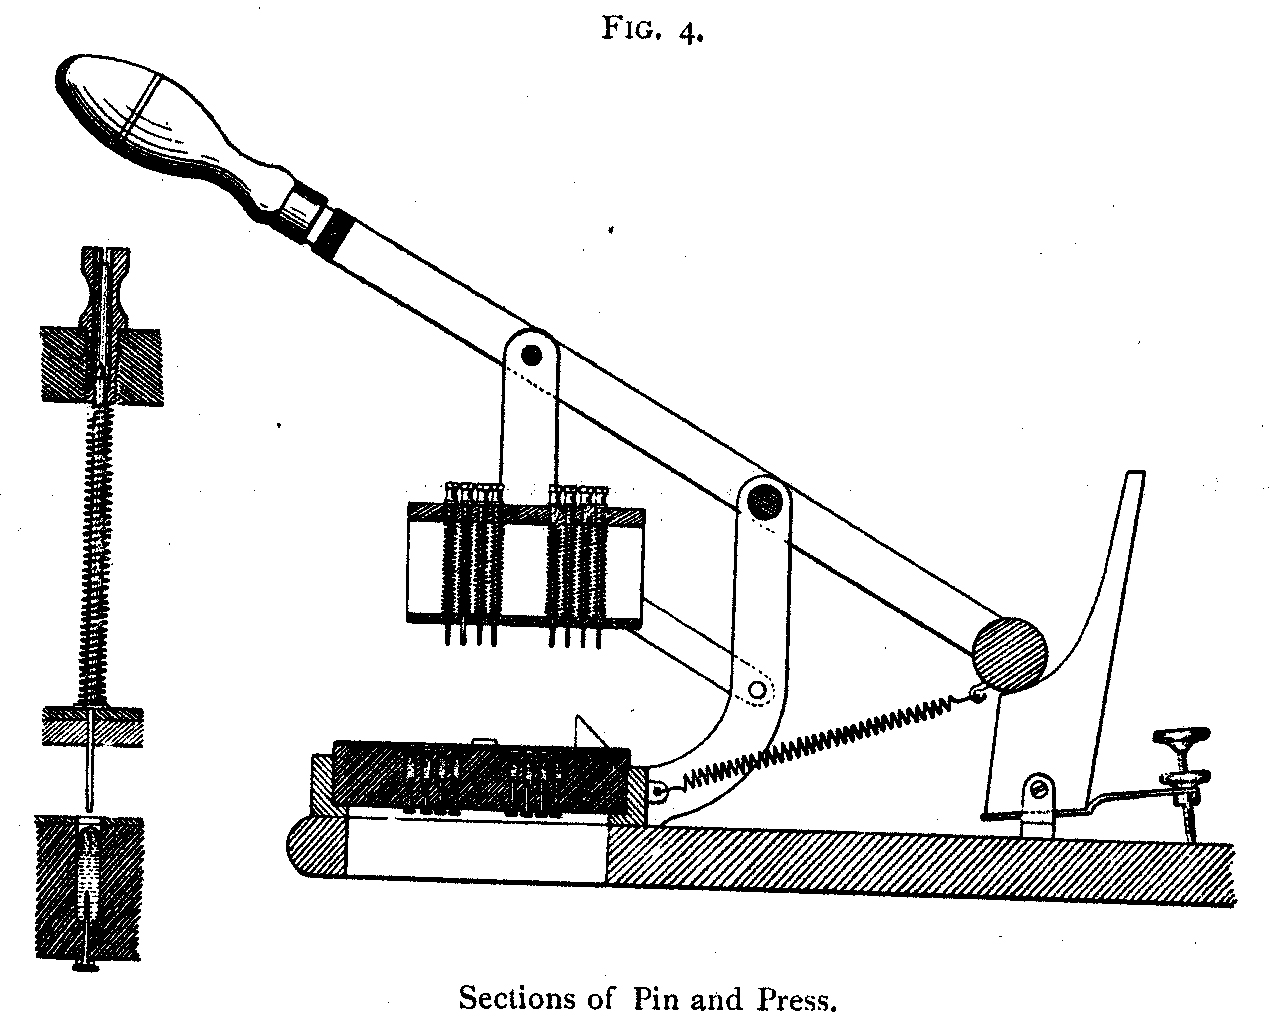 Sections of pin and press